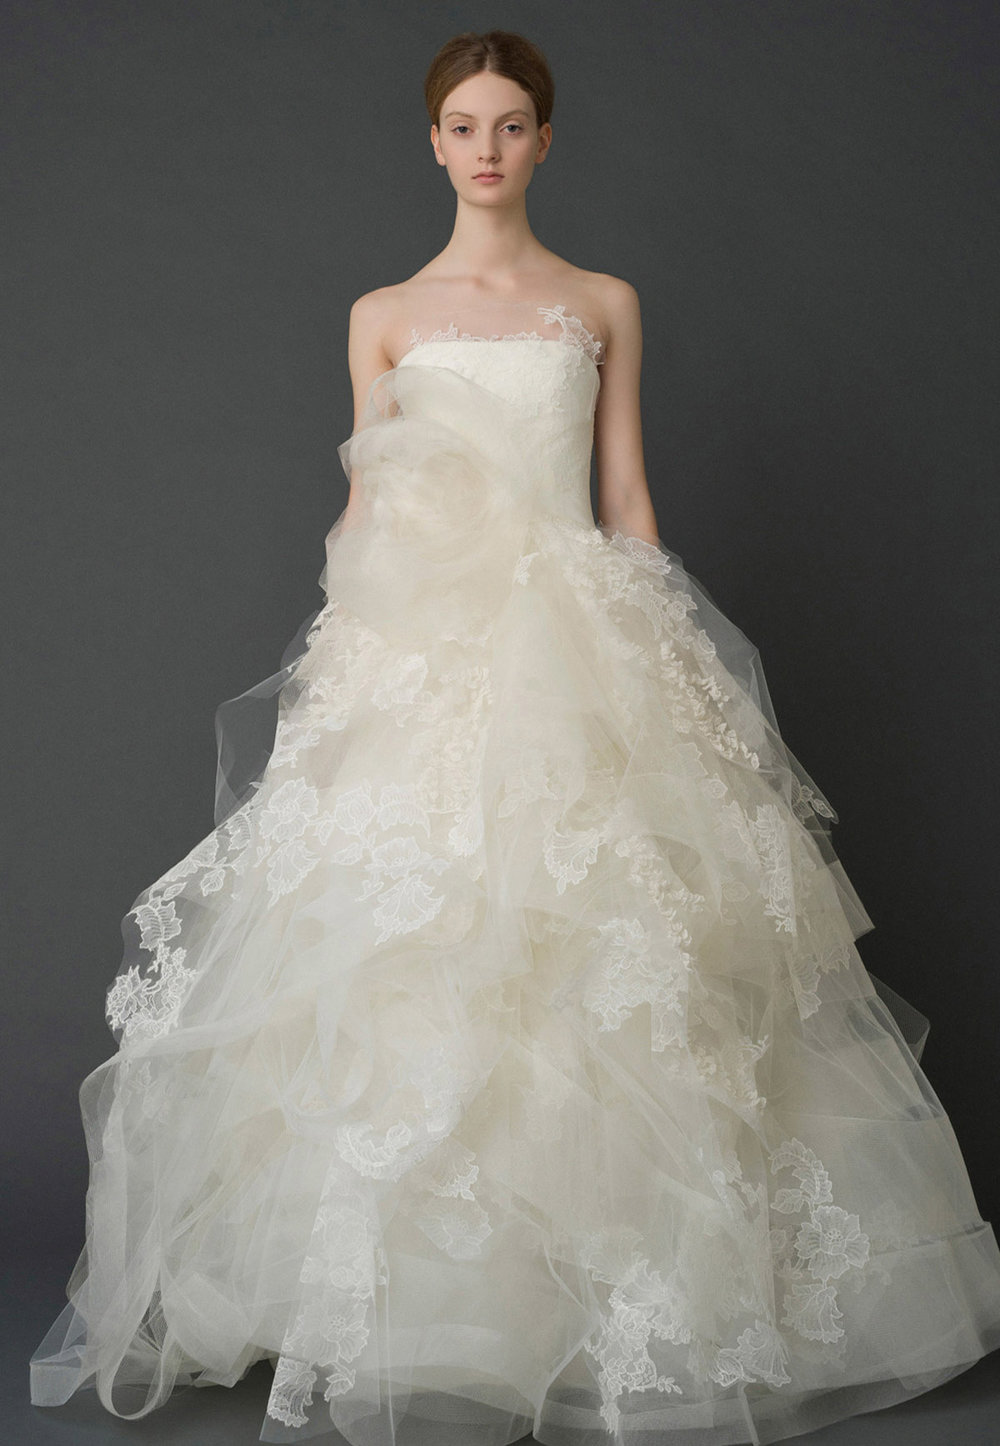 Iconic Style    Gown Name: Helena    Description: A strapless soft ball gown with floating lace and organza sprig appliques with hand-tacked voluminous framed horsehair overskirt.